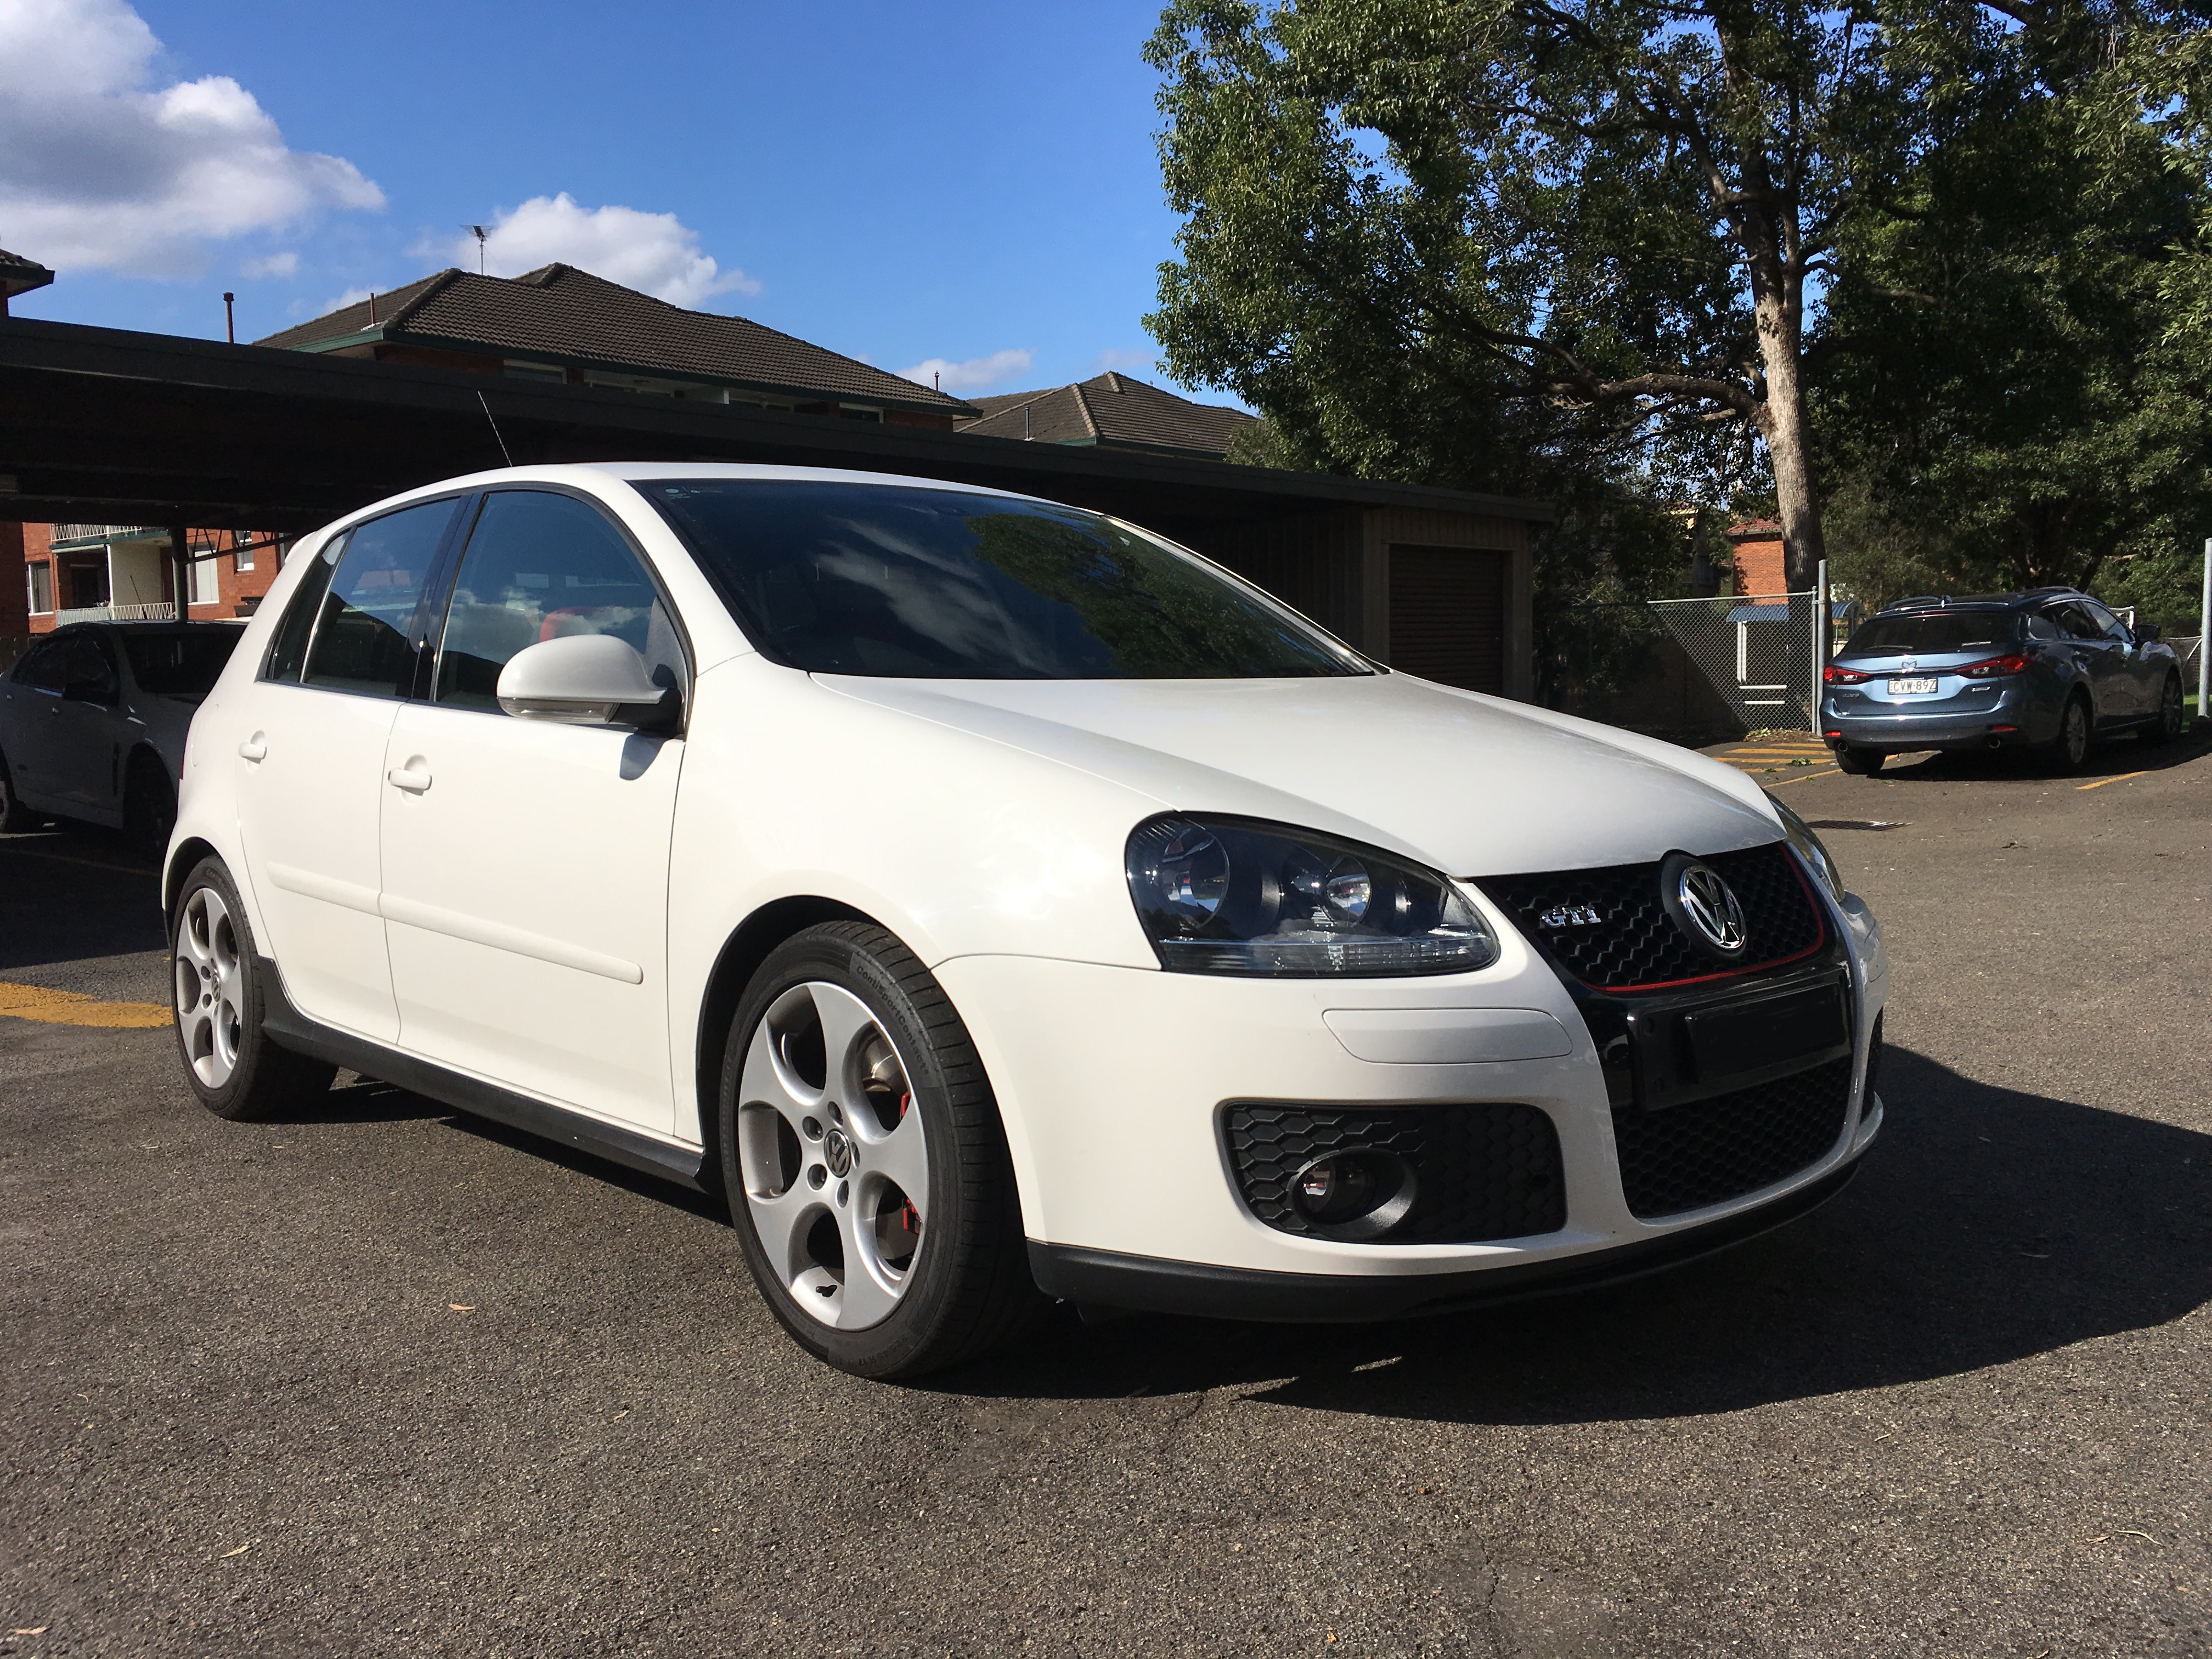 2008 Volkswagen Golf Gti Review Caradvice